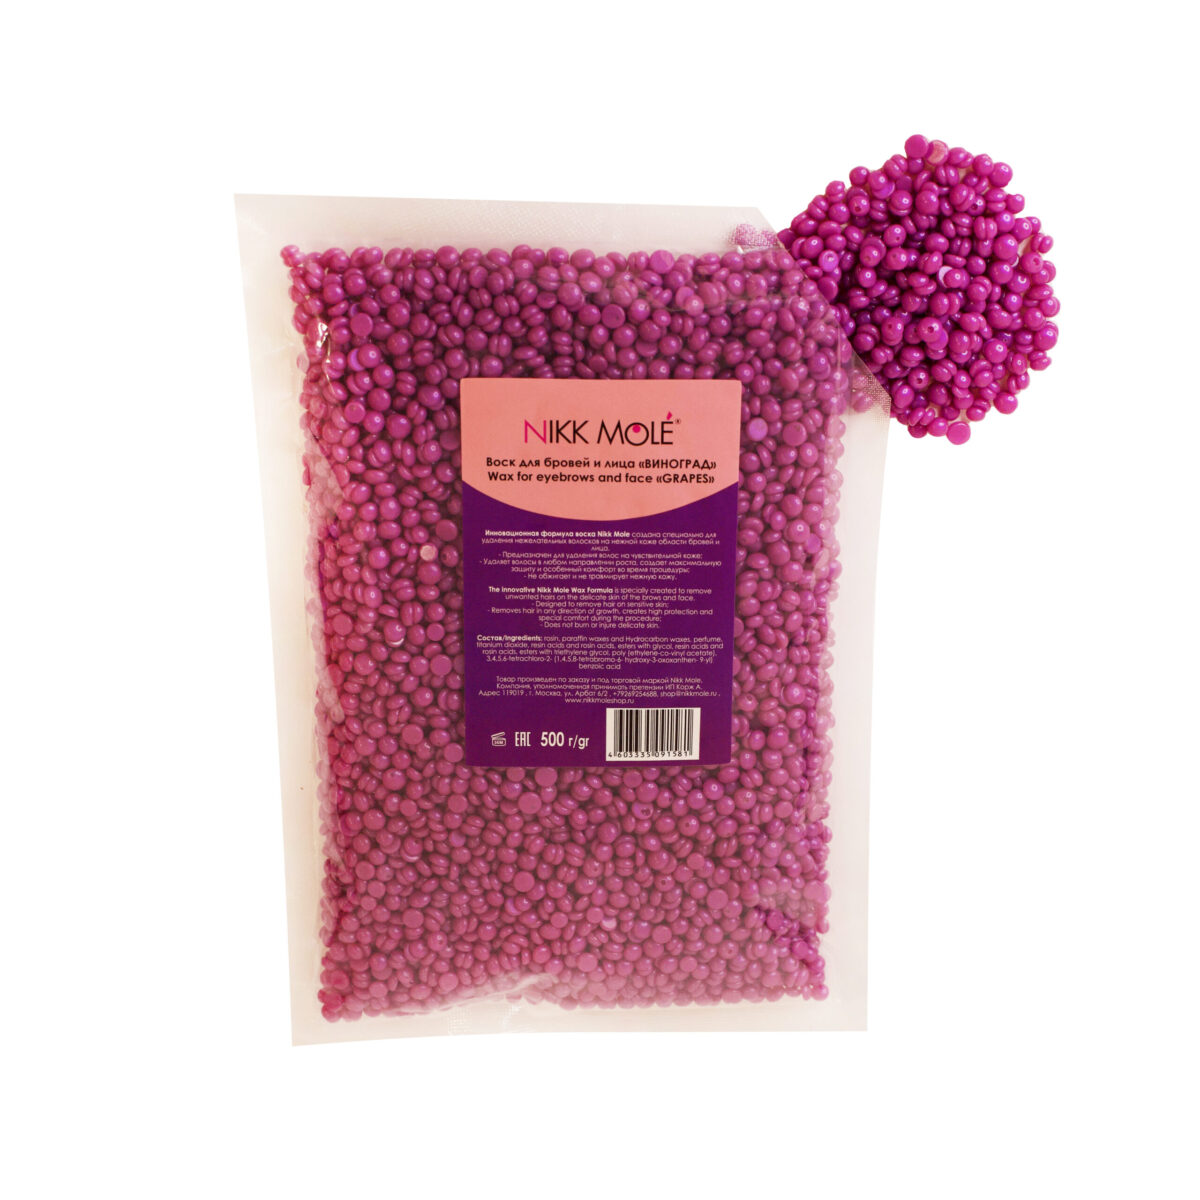 Grapes eyebrow and face wax 500g